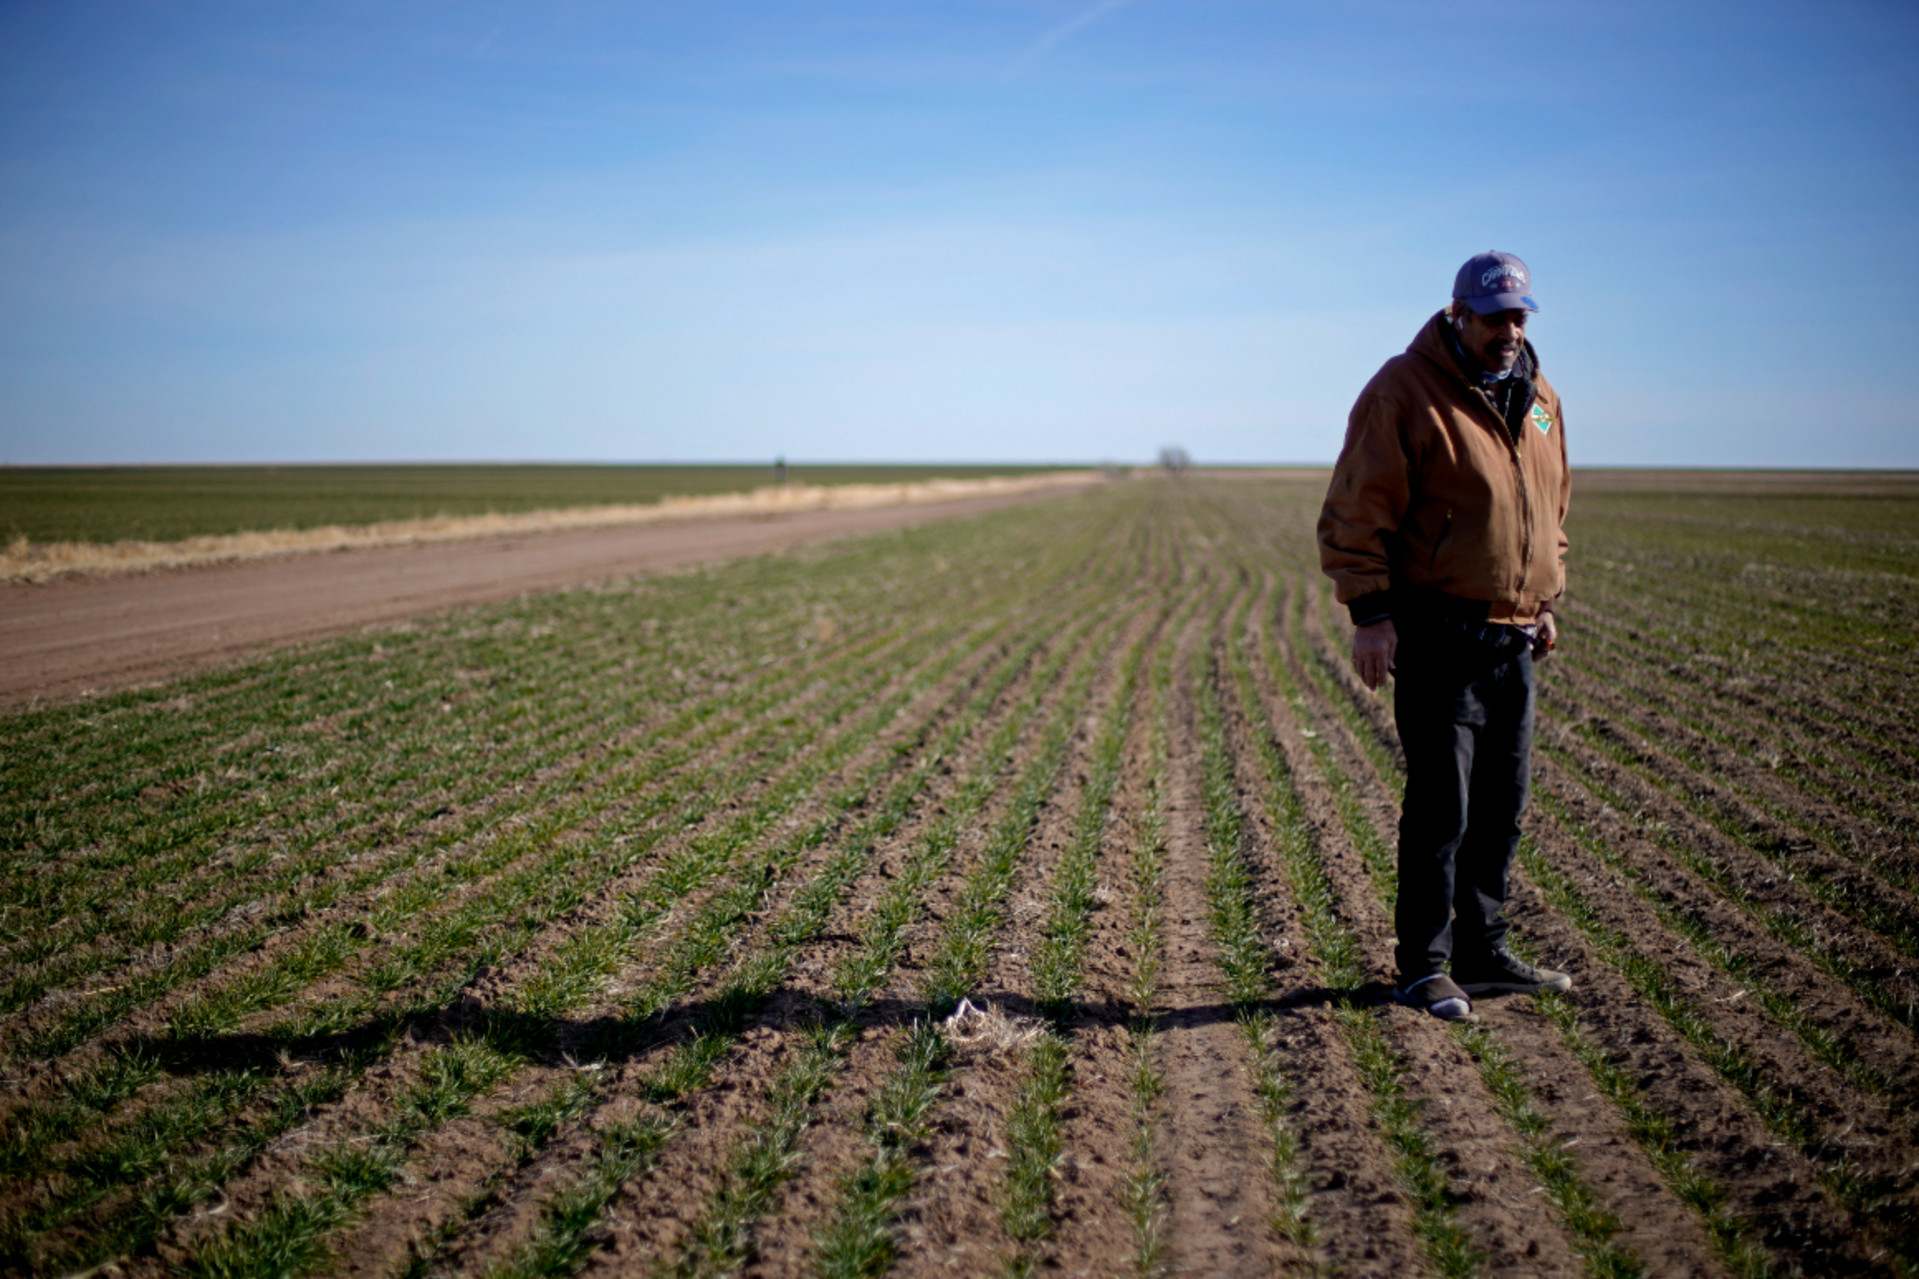 'Rampant issues': Black farmers are still left out at USDA